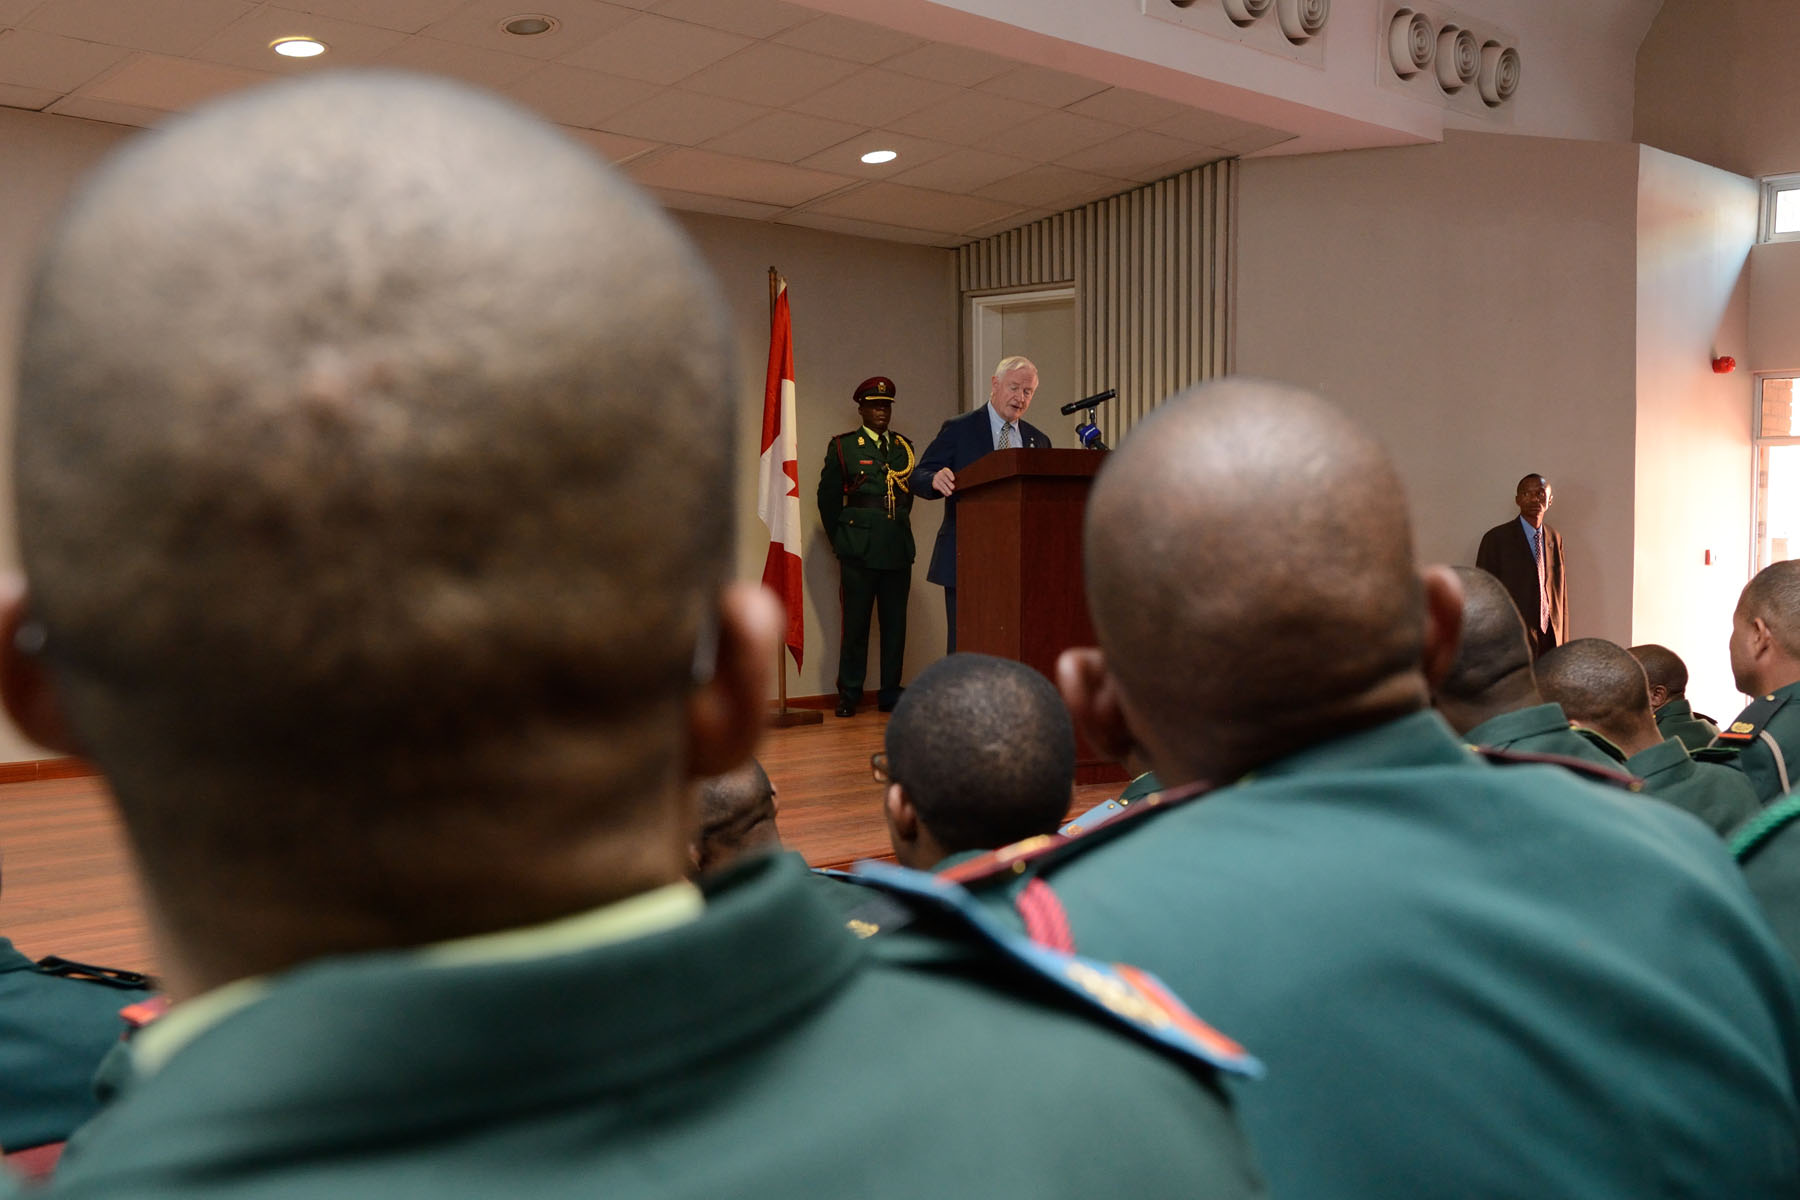 As commander-in-chief of Canada, His Excellency visited the Botswana Defence Force Staff College to see how Canada and Botswana have developed strong defence relations through Canada's Military Training and Co-operation Program.